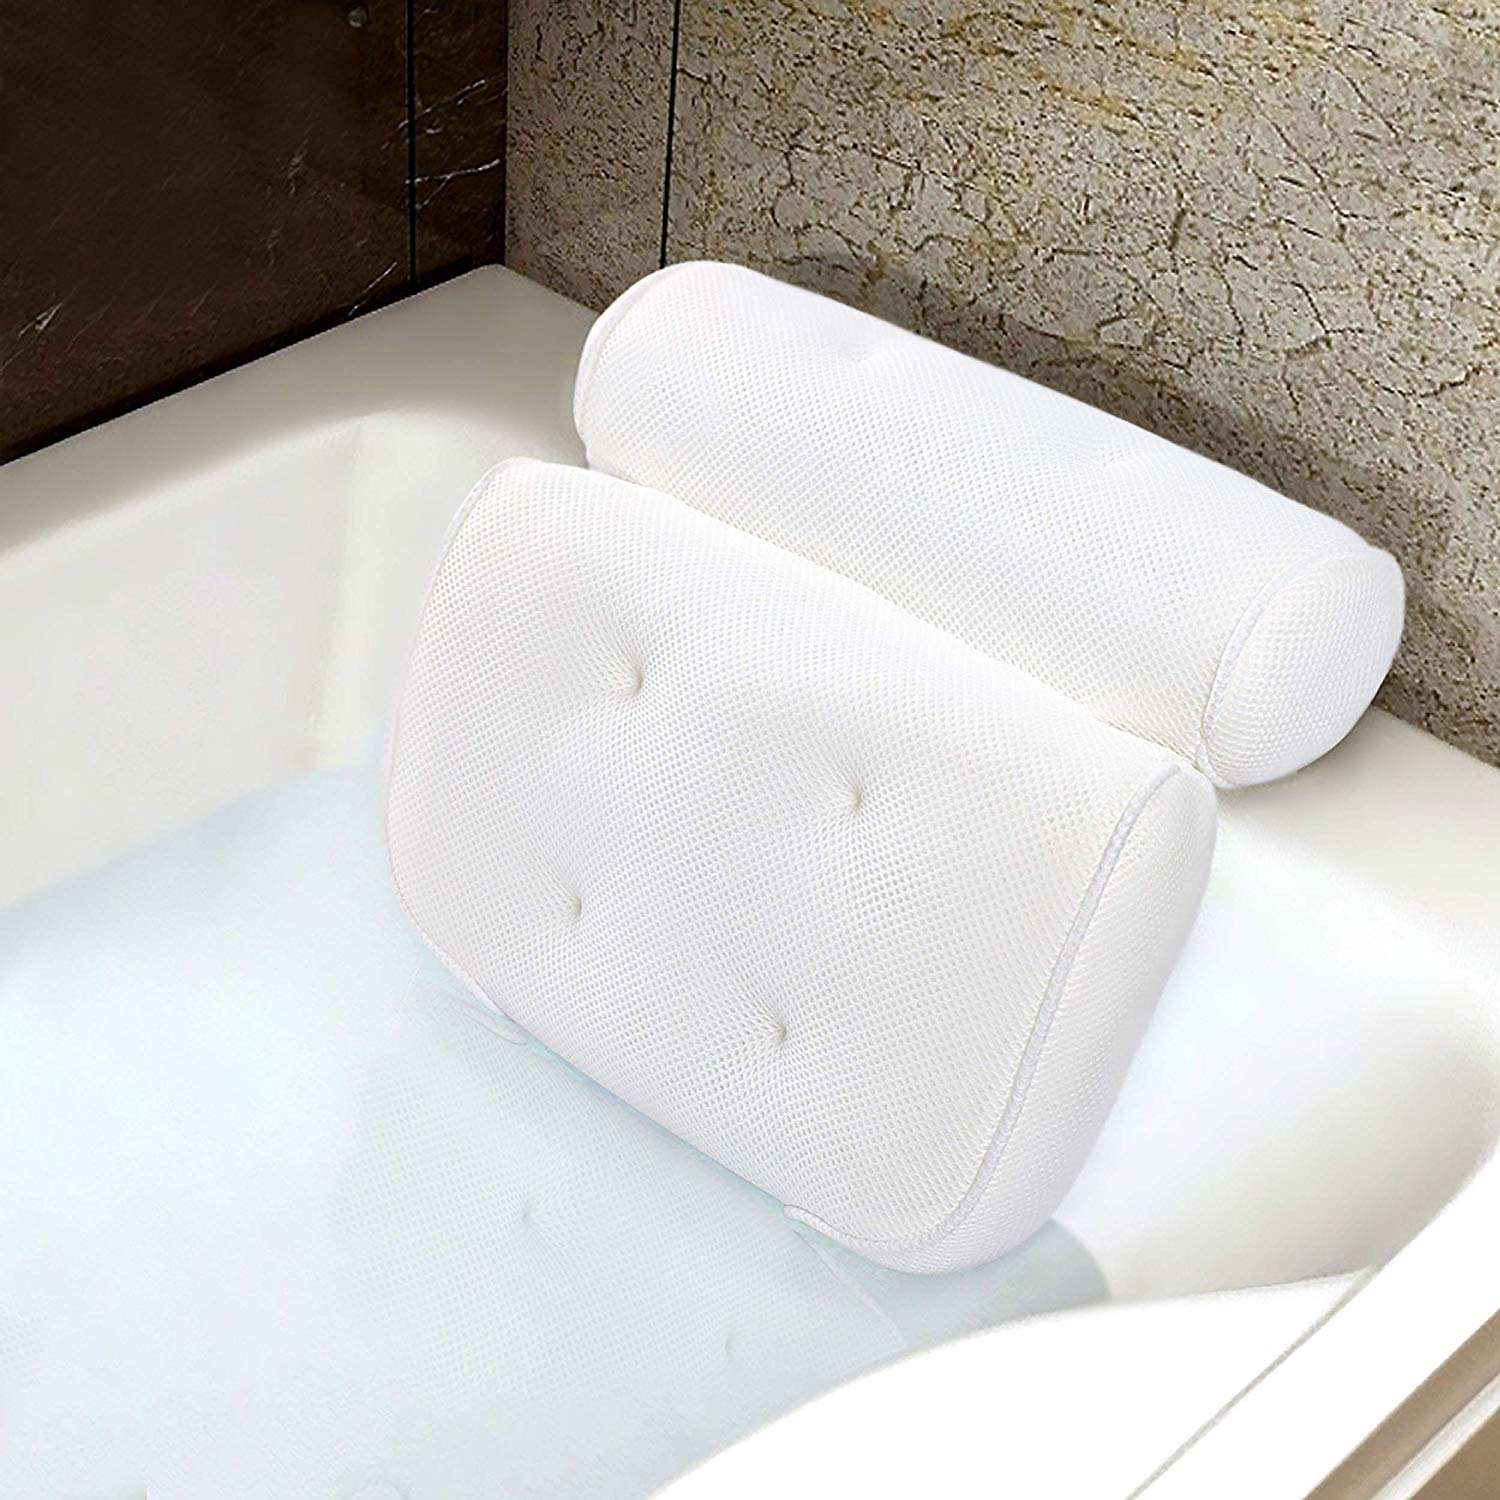 SPA Luxury Bathtub Pillow Big 3D Mesh Bath Pillow with 6 Suction Cups & Hang Hook Good Head Neck Back Support Quick Dry Anti-Mold, Gift Wrap